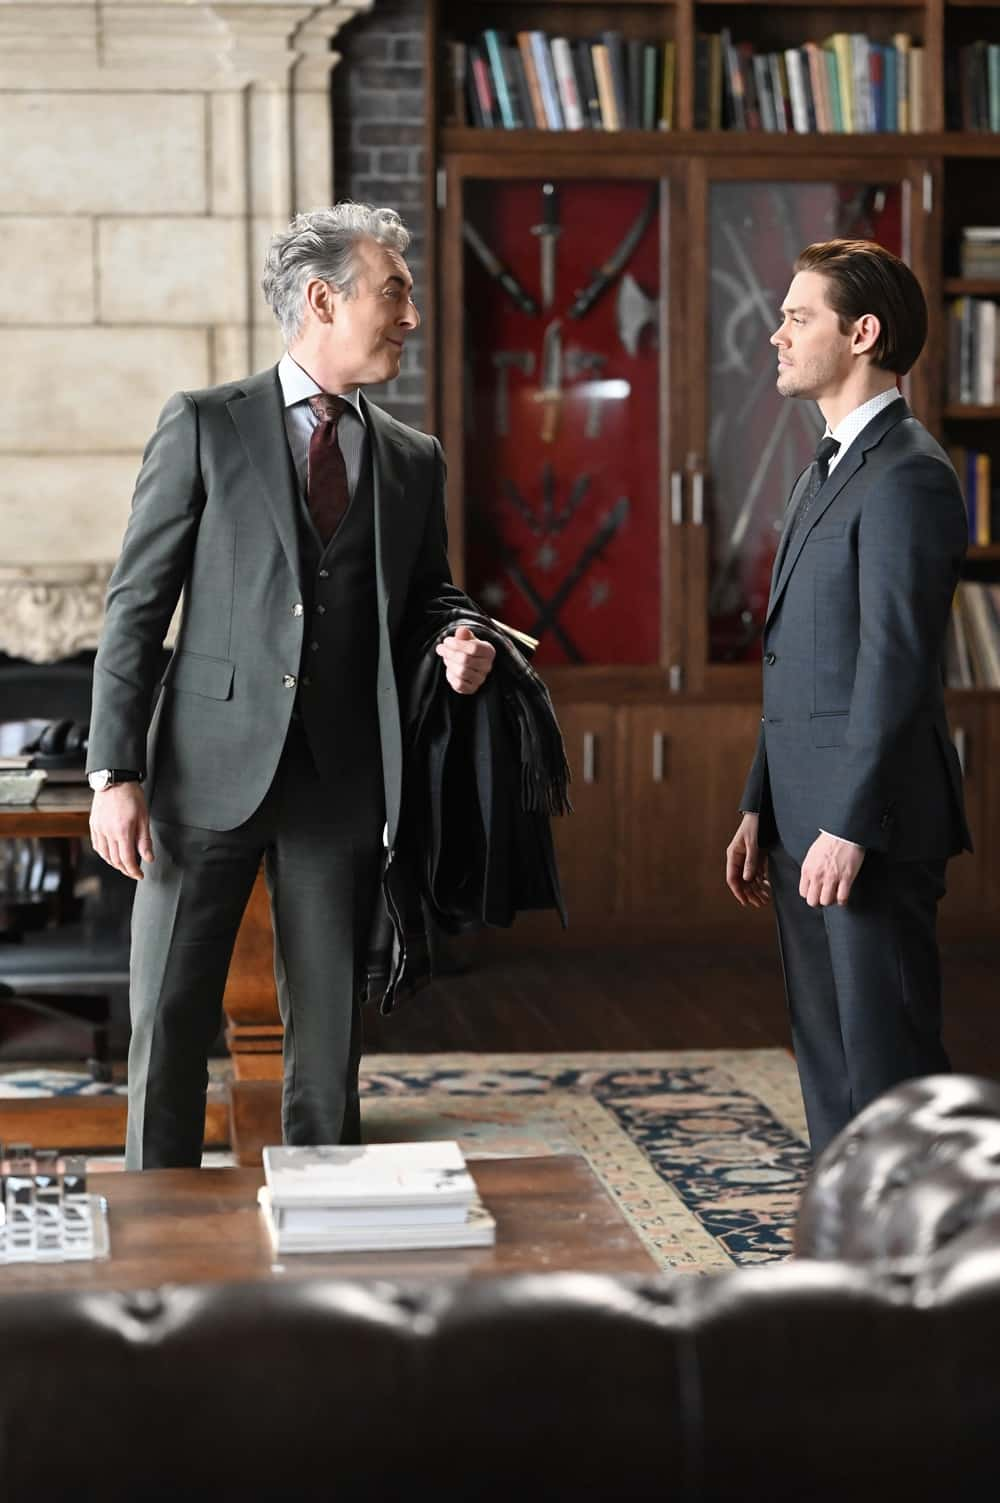 PRODIGAL SON Season 2 Episode 8 : L-R: Guest star Alan Cumming and Tom Payne in the ìOuroborosî episode of PRODIGAL SON airing Tuesday, April 13 (9:01-10:00 PM ET/PT) on FOX. ©2021 Fox Media LLC Cr: Phil Caruso/FOX